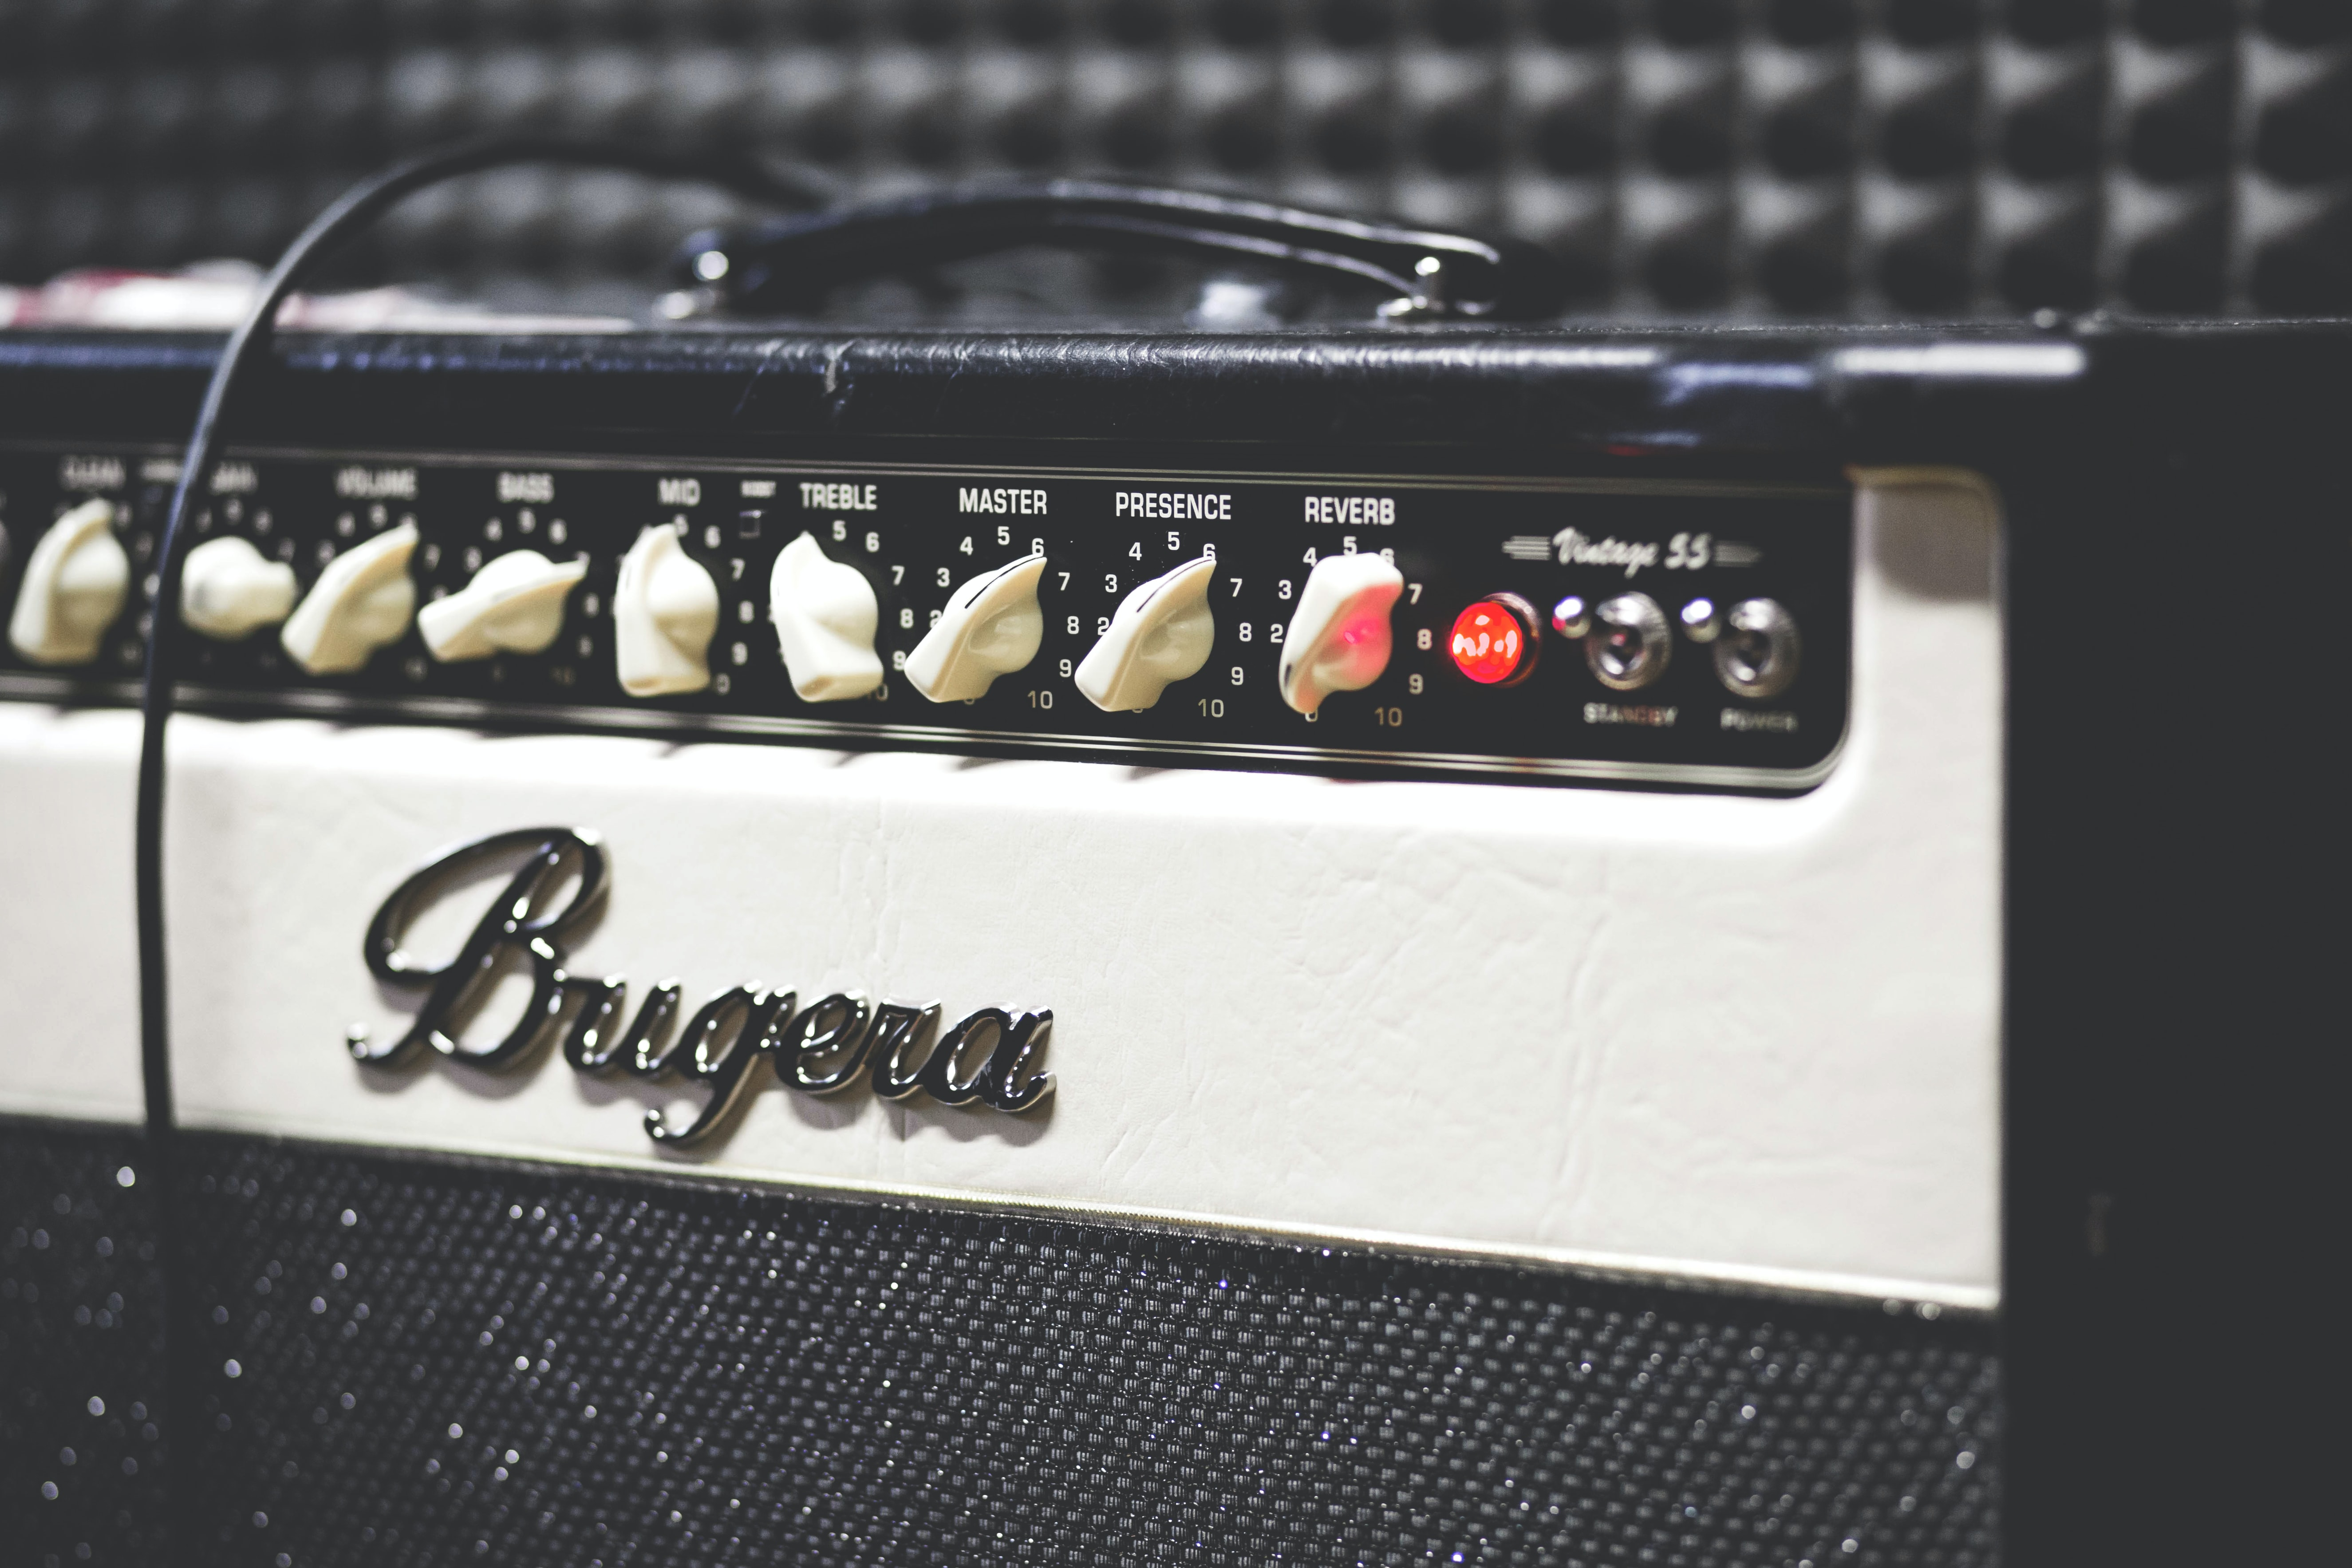 A close-up of a Bugera amplifier